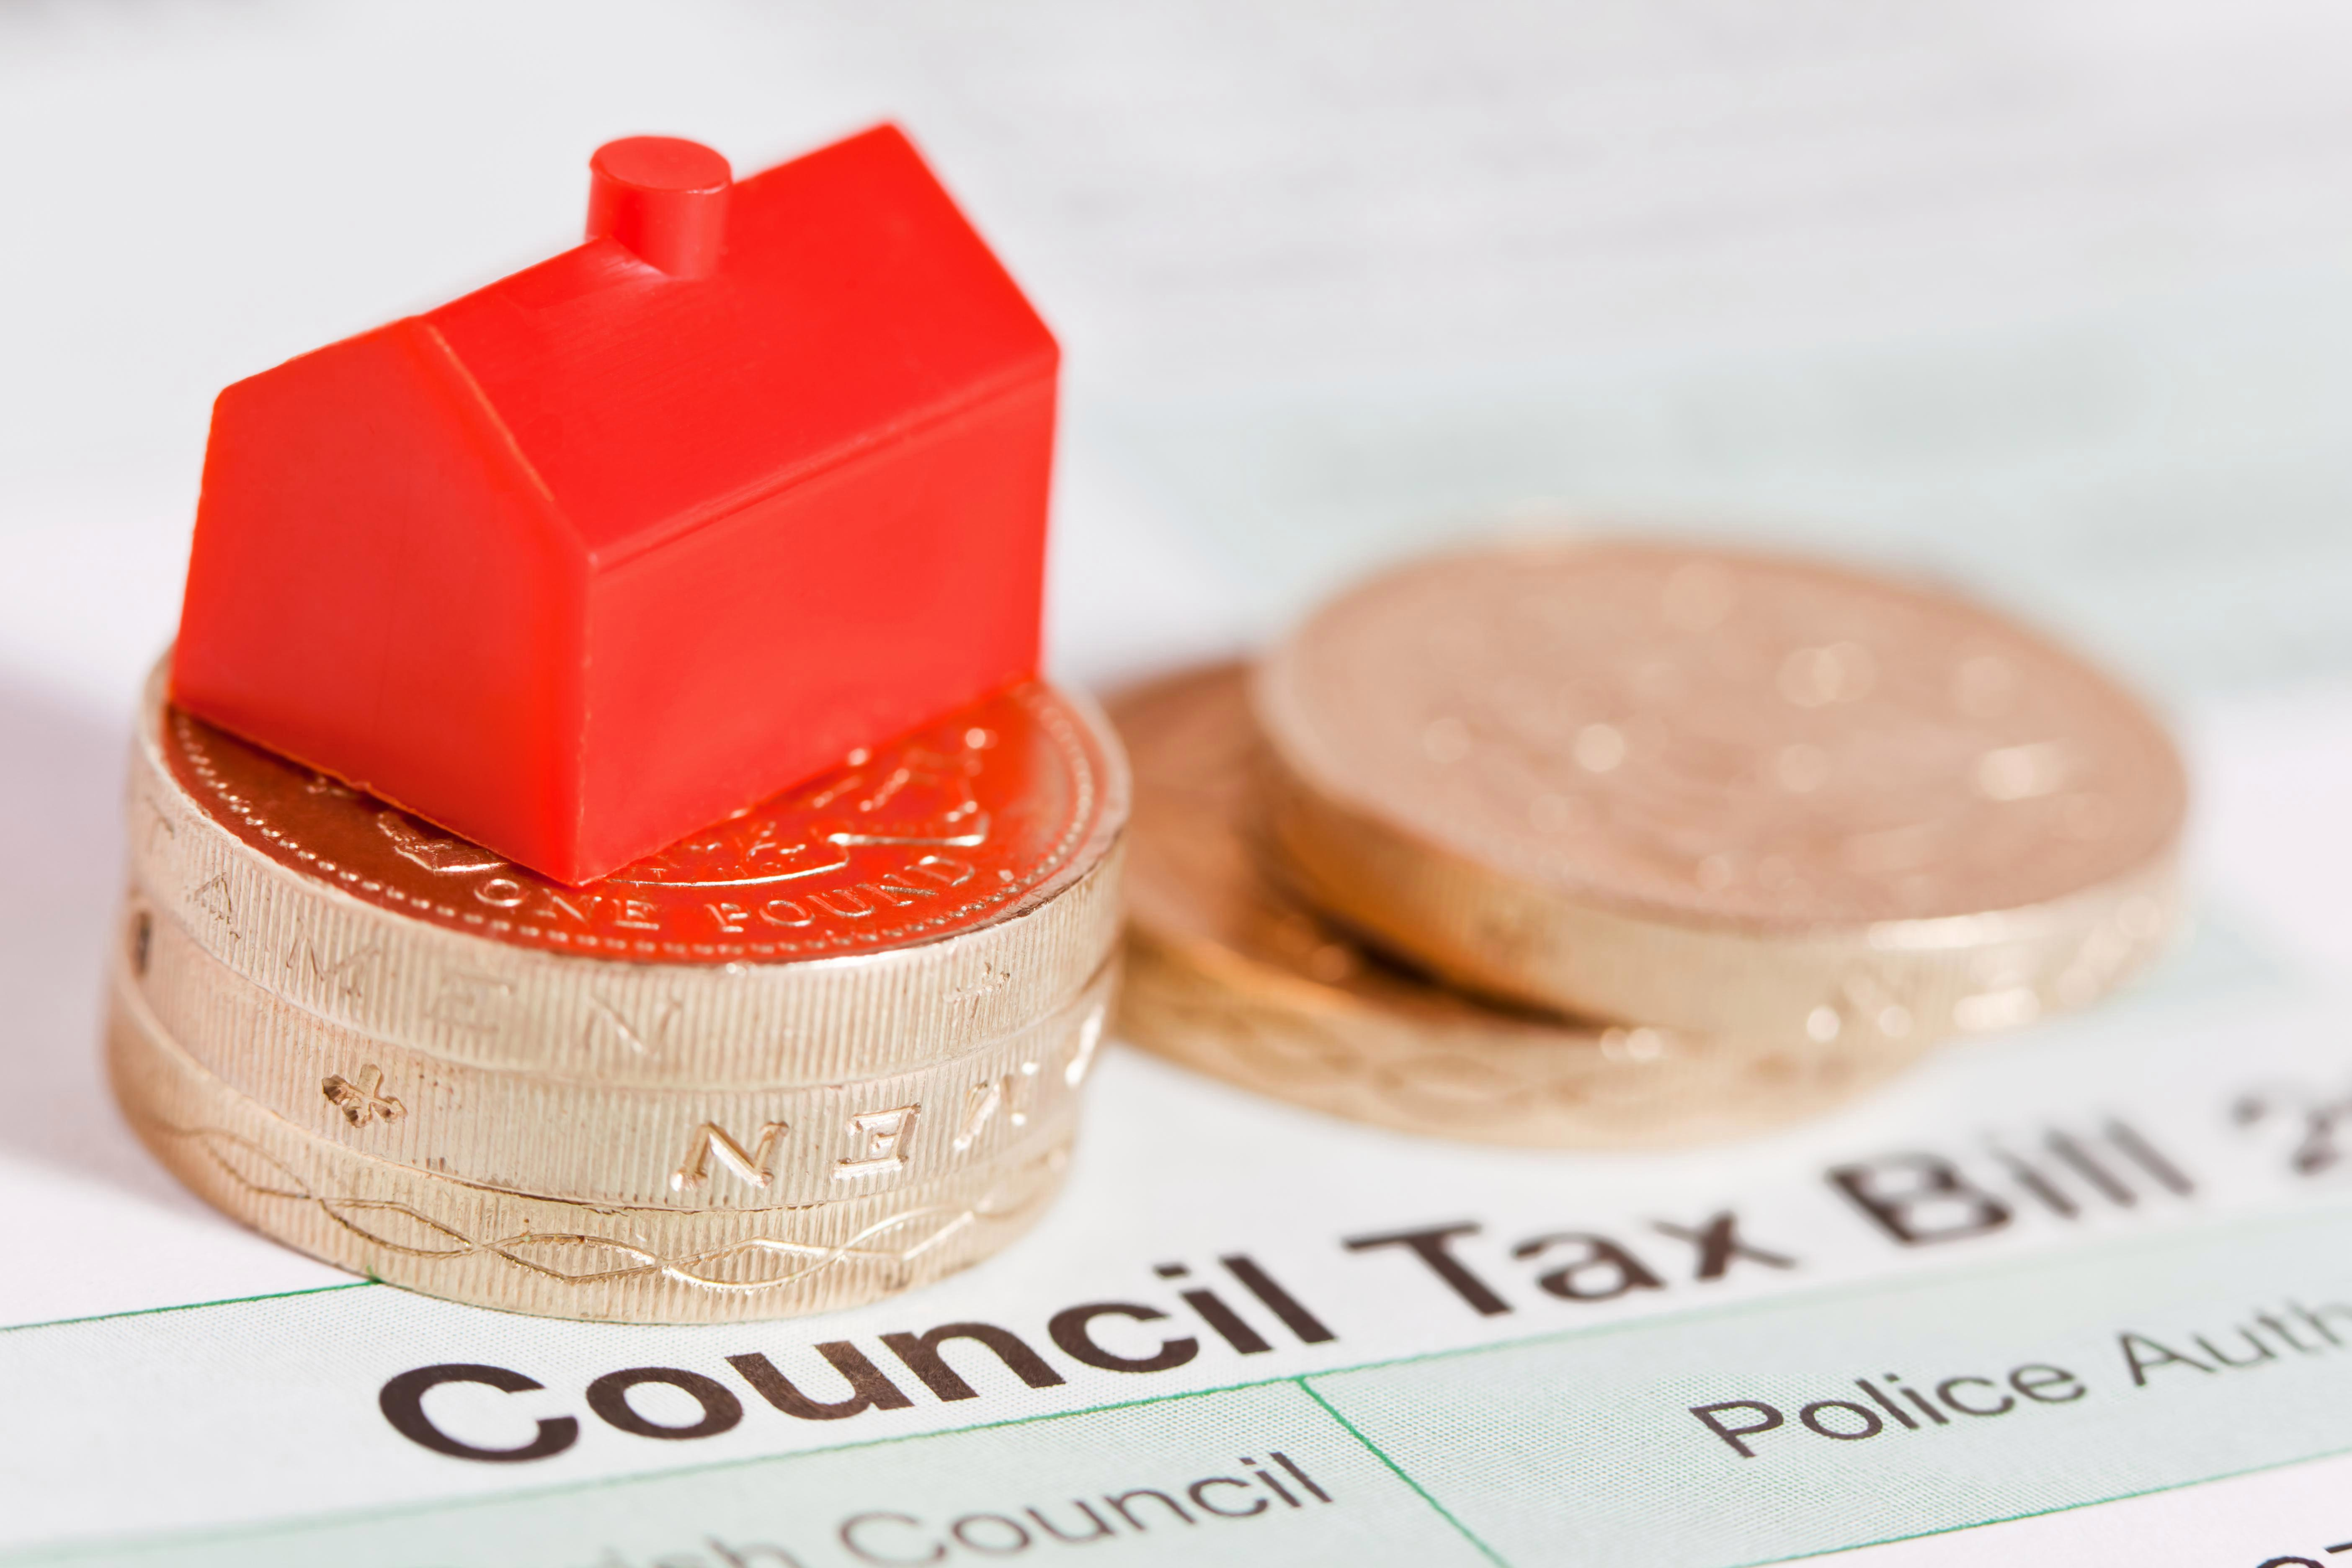 Council tax bills for squeezed Brits have rocketed by 57% in the last 20 years